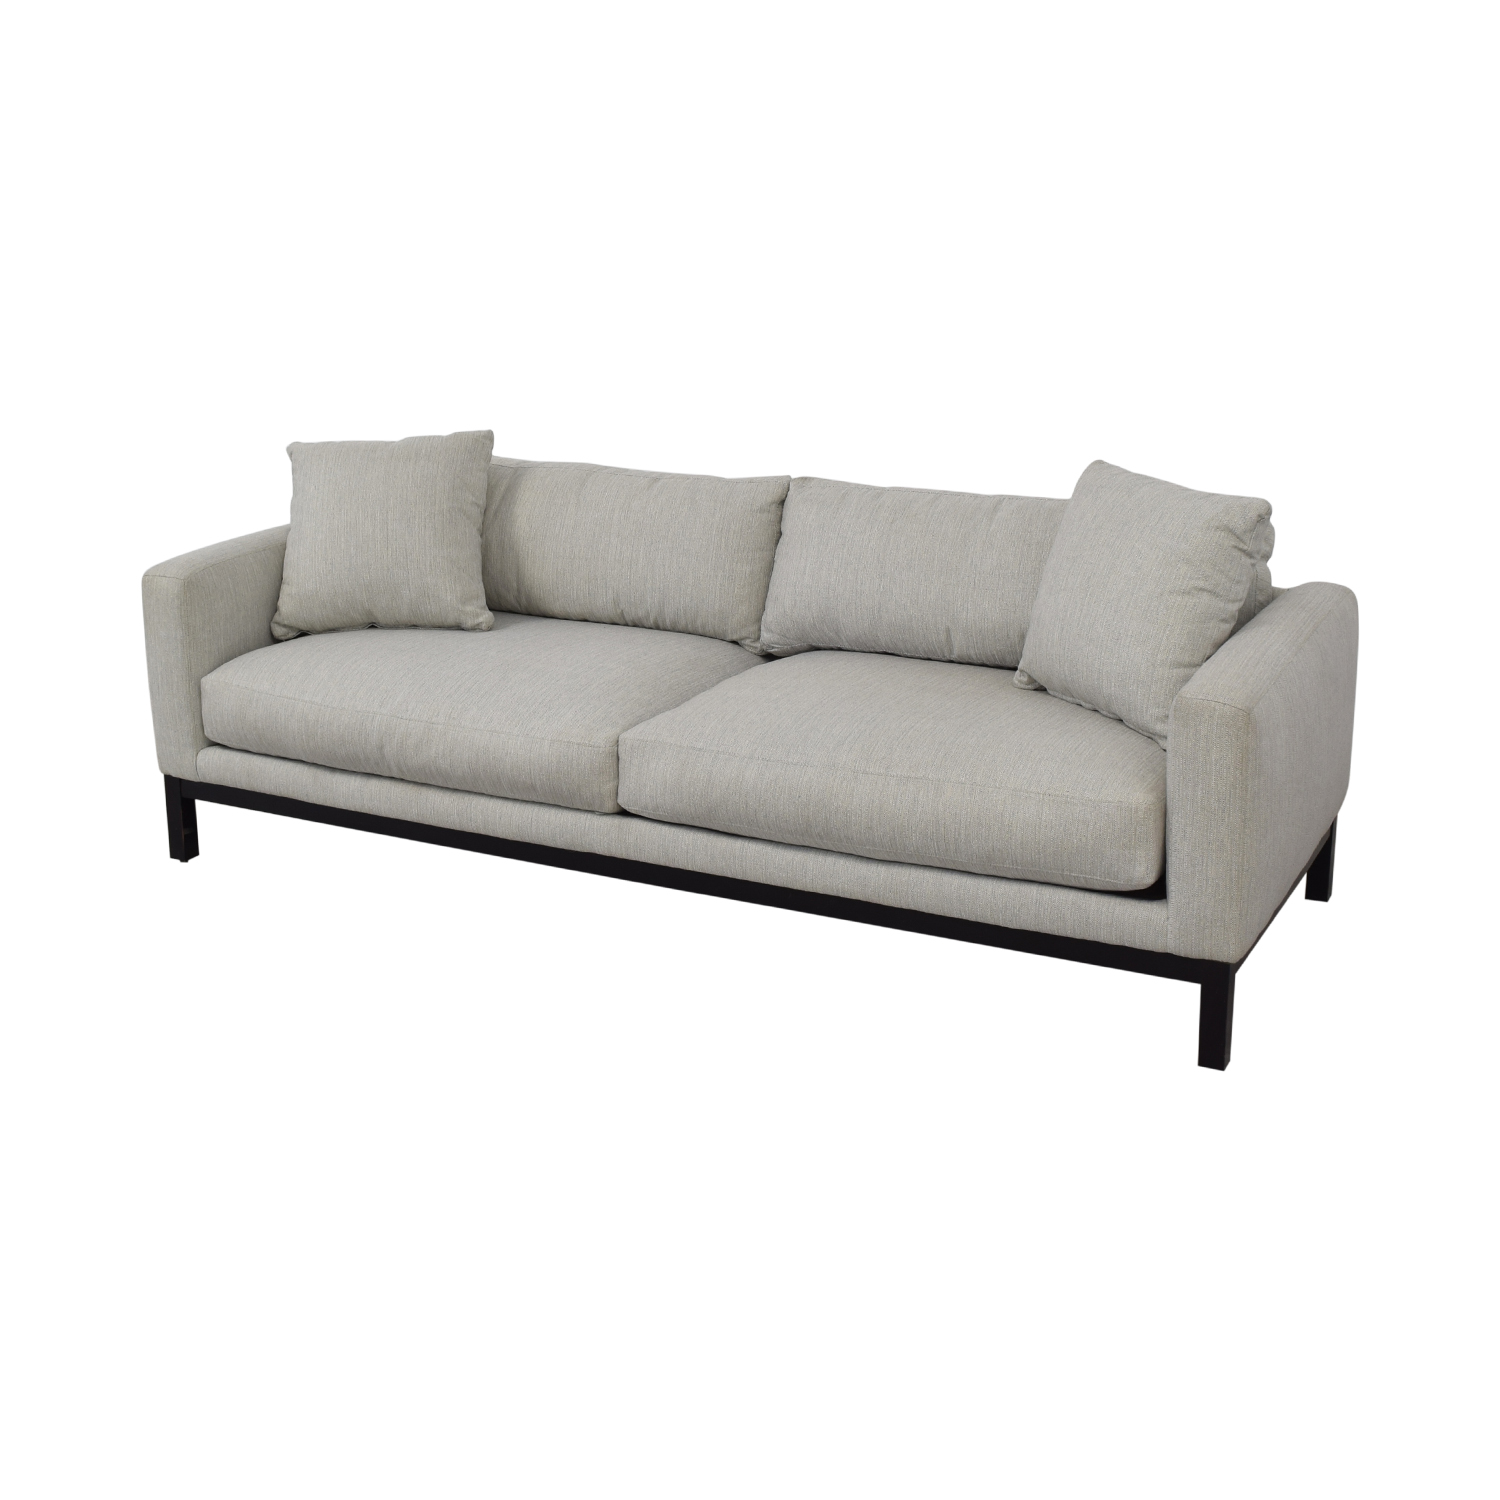 Rowe Furniture Rowe Furniture Contemporary Light Gray Upholstered Sofa coupon